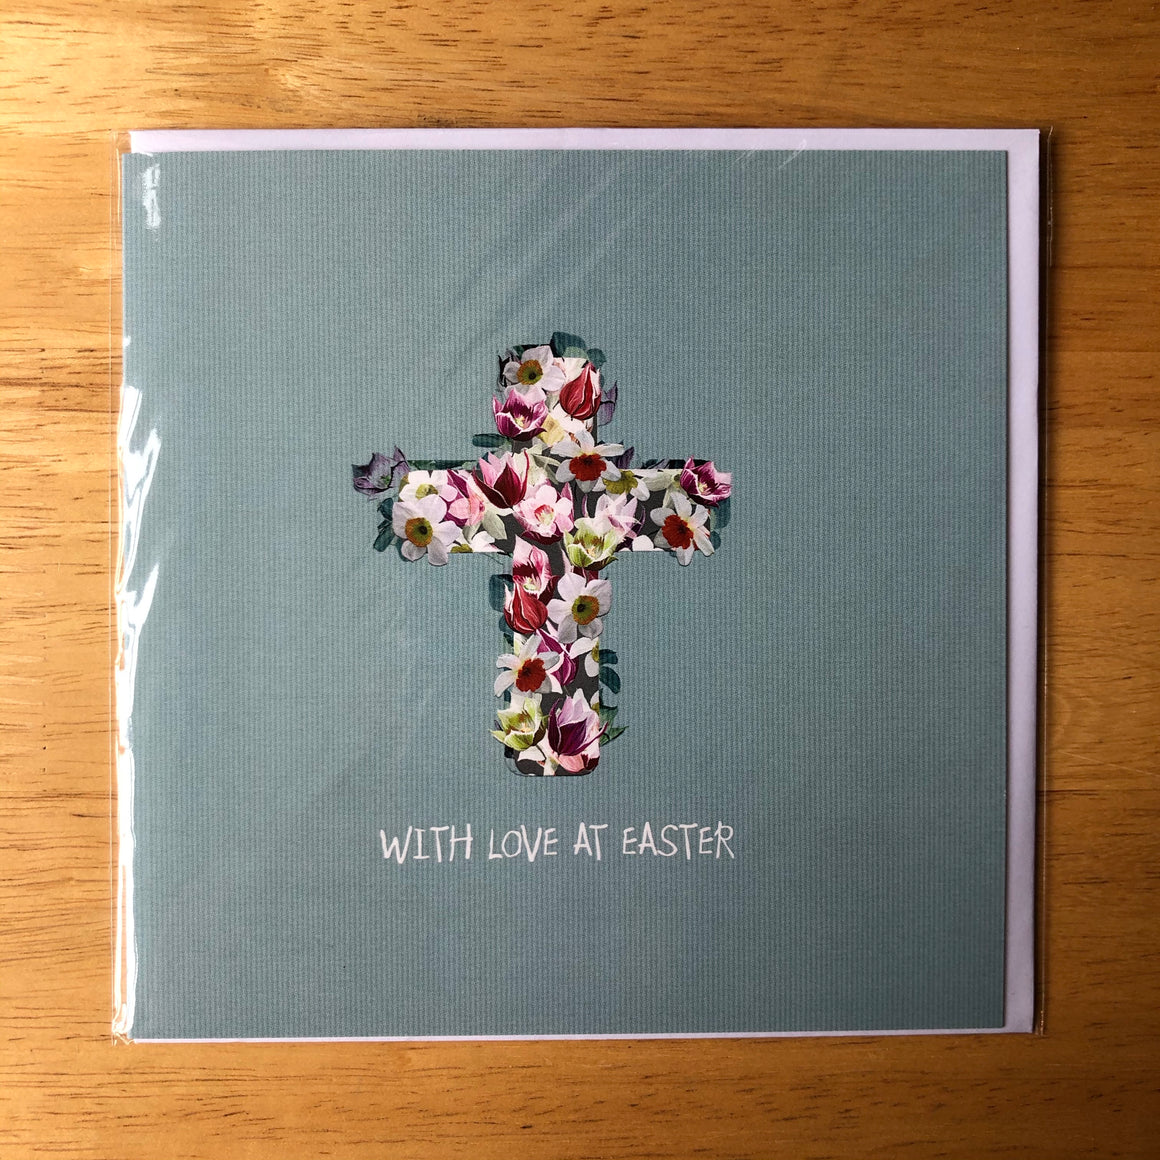 With Love at Easter - Floral Cross Card